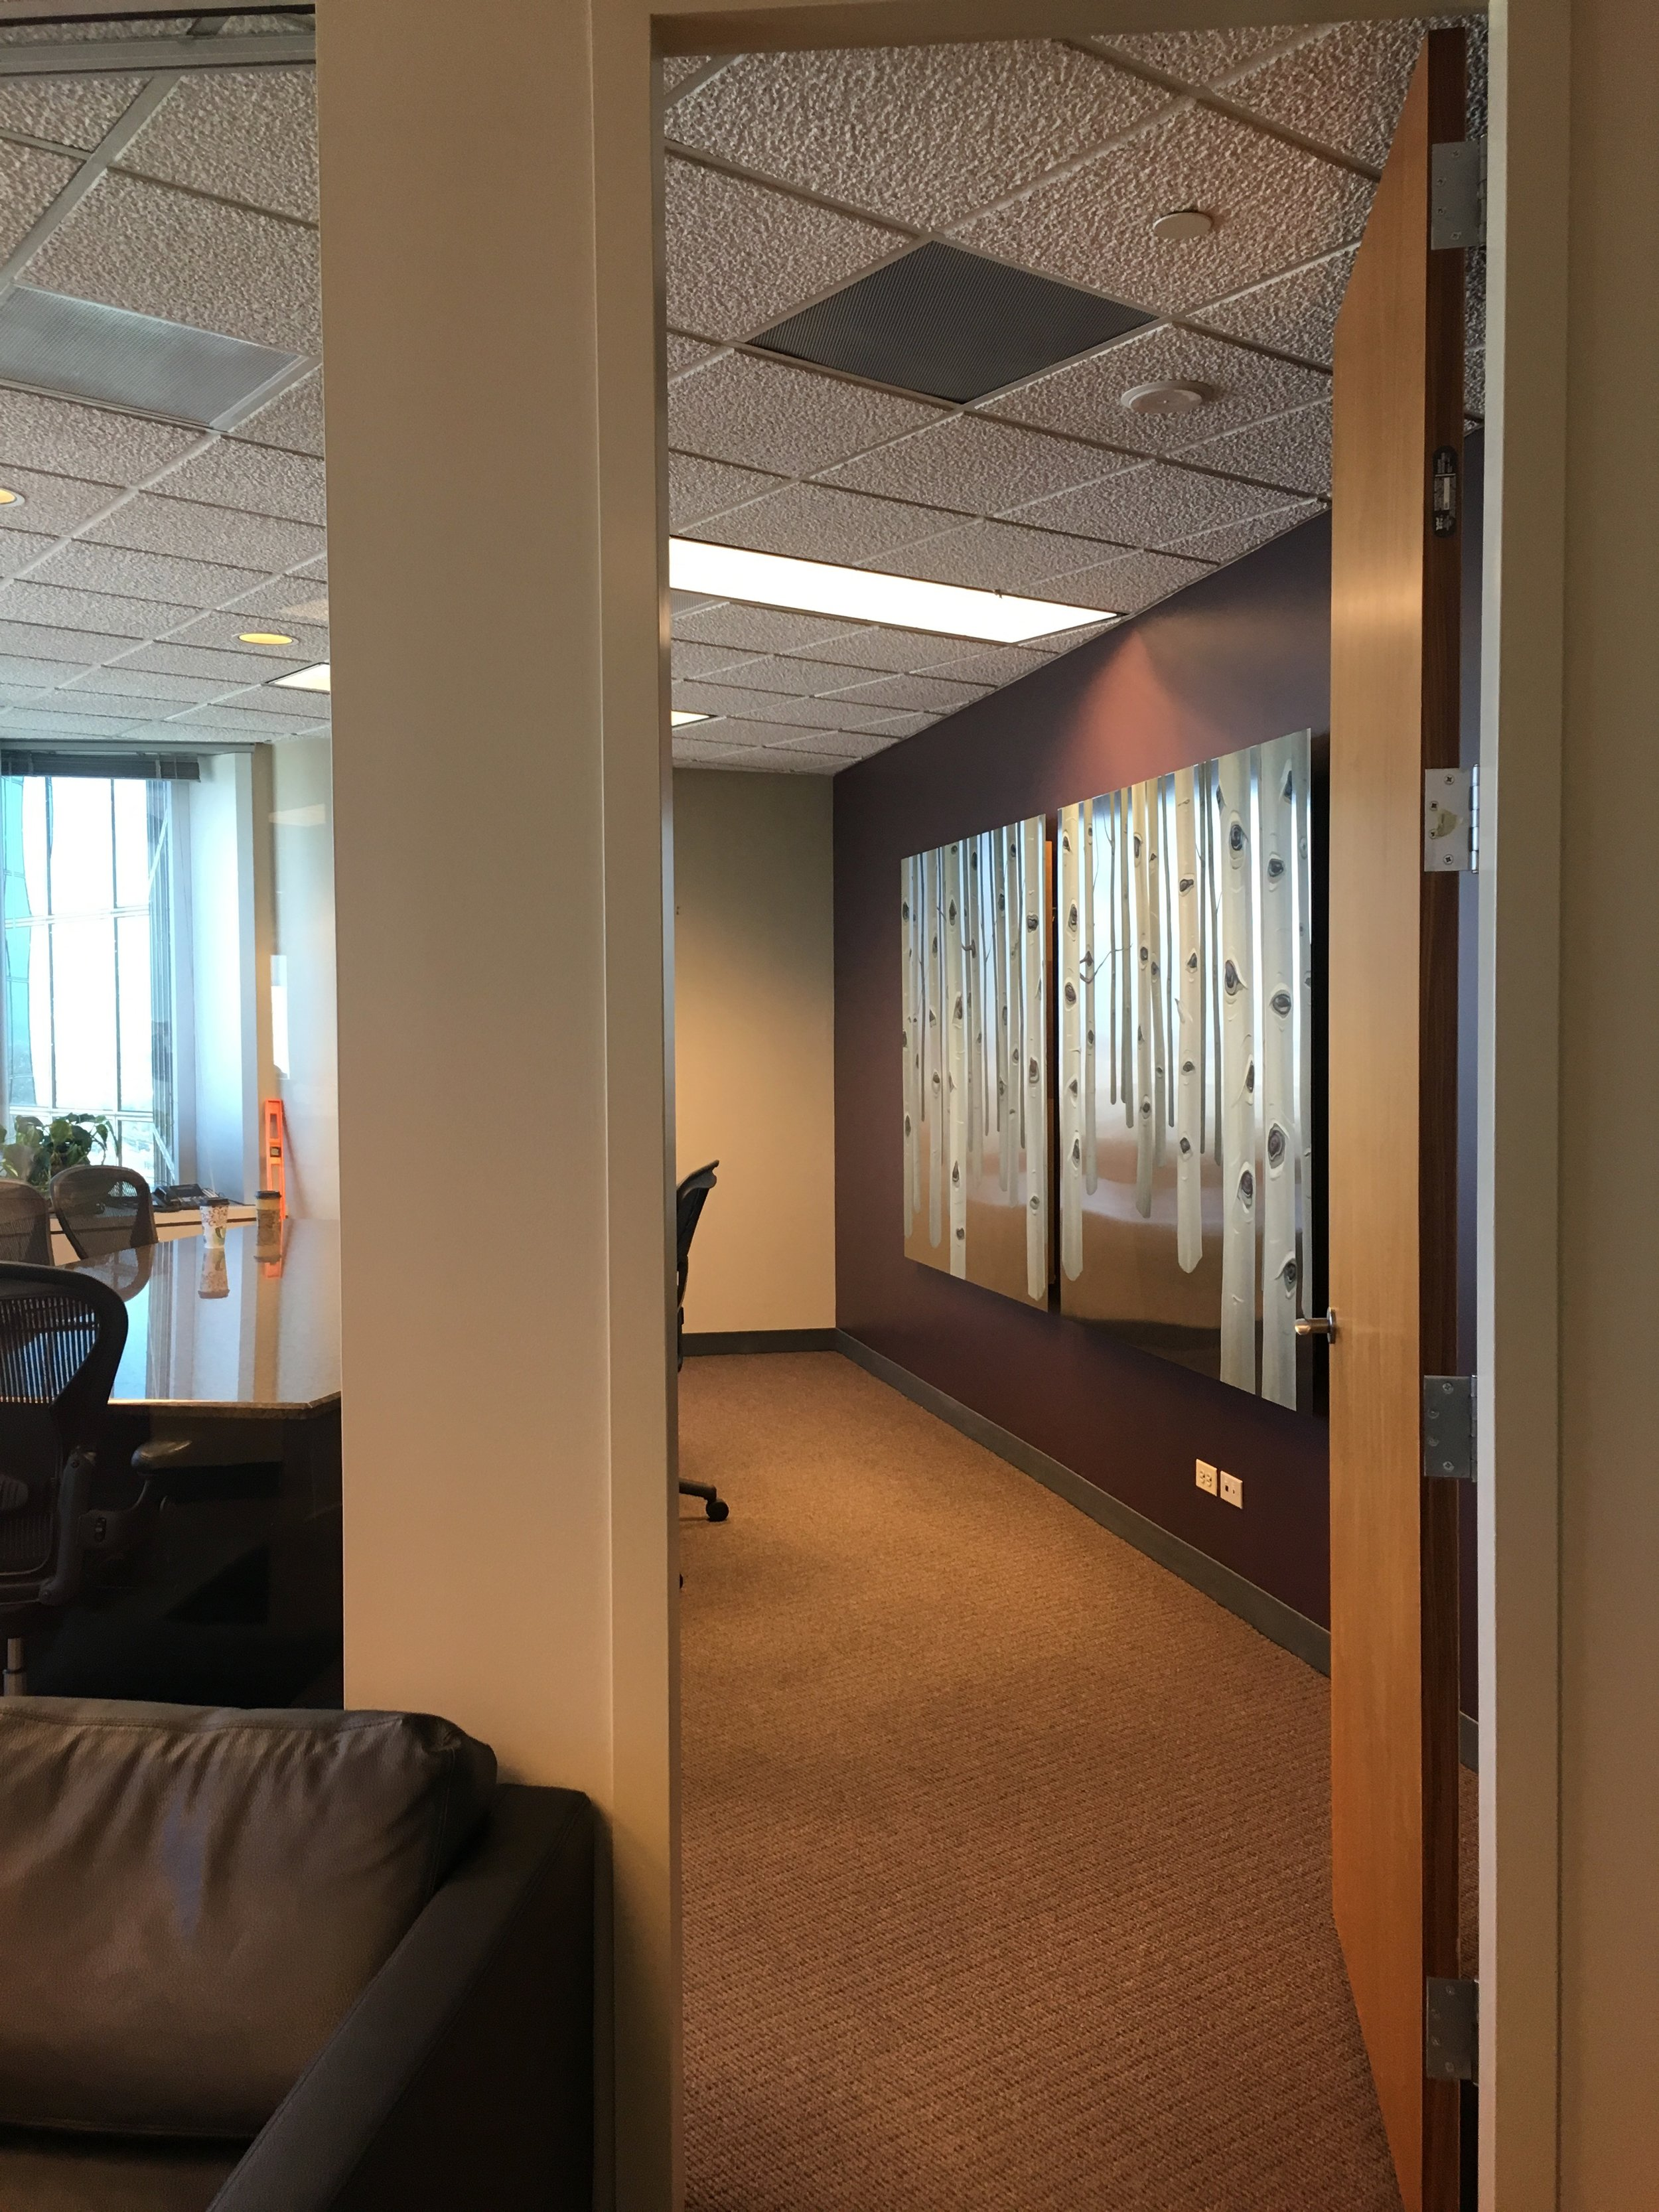 Sentinels installed in the offices of Jester, Gibson & Moore LLP, Denver, CO